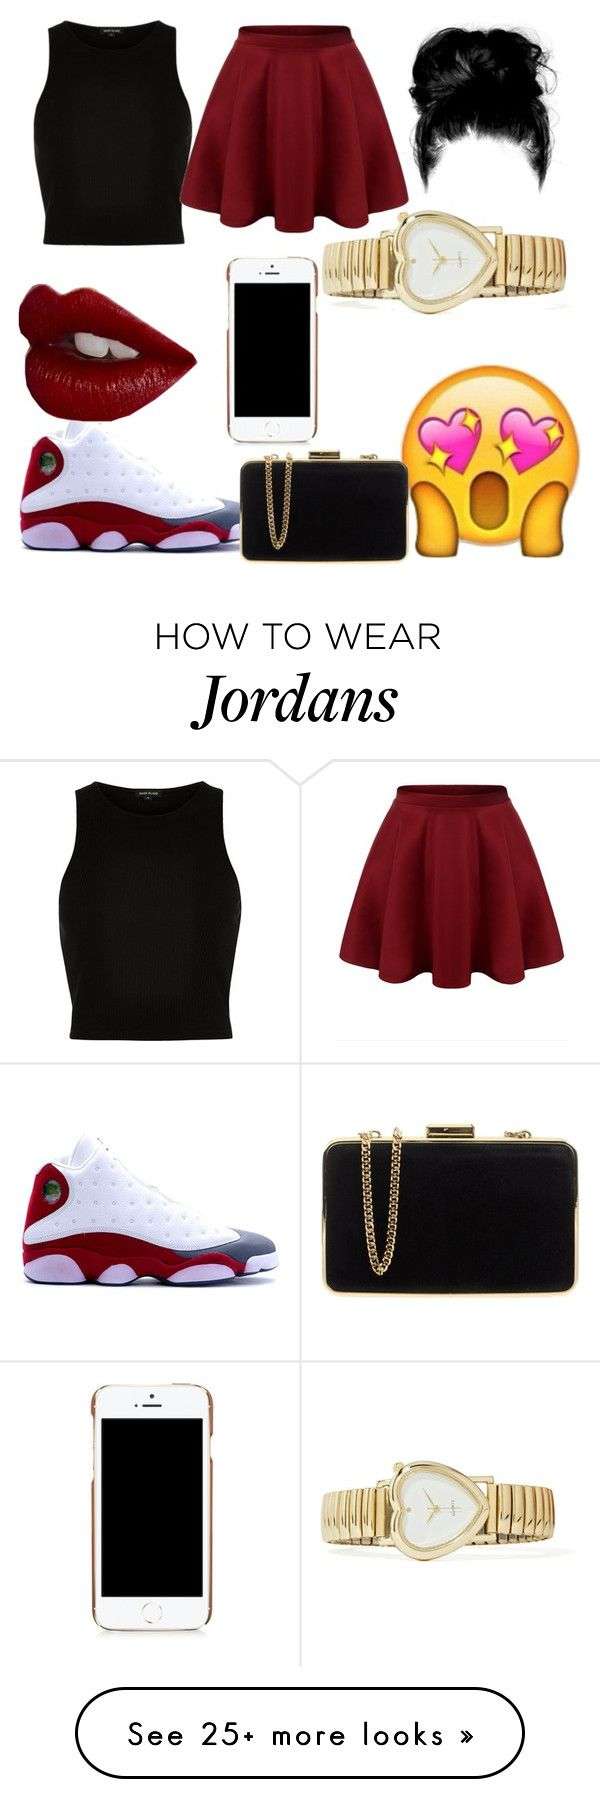 """"""""""" by chassitygarrett on Polyvore featuring River Island, NIKE, Charlotte Tilbury, Moschino and MICHAEL Michael Kors"""